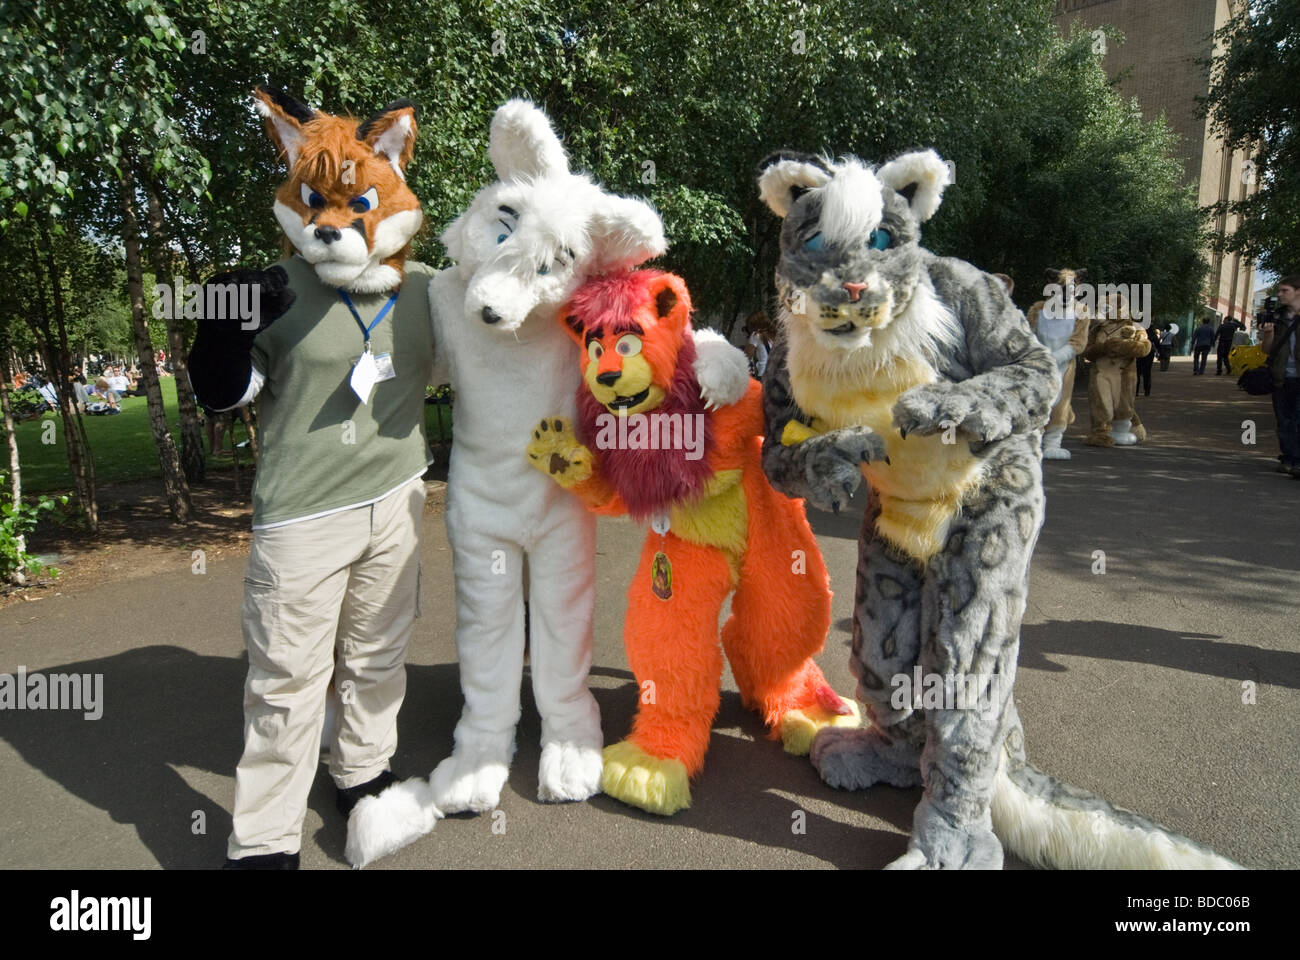 FOUR PEOPLE DRESSED AS ANIMALS FOR THE CHARITY FUNDRISING - Stock Image